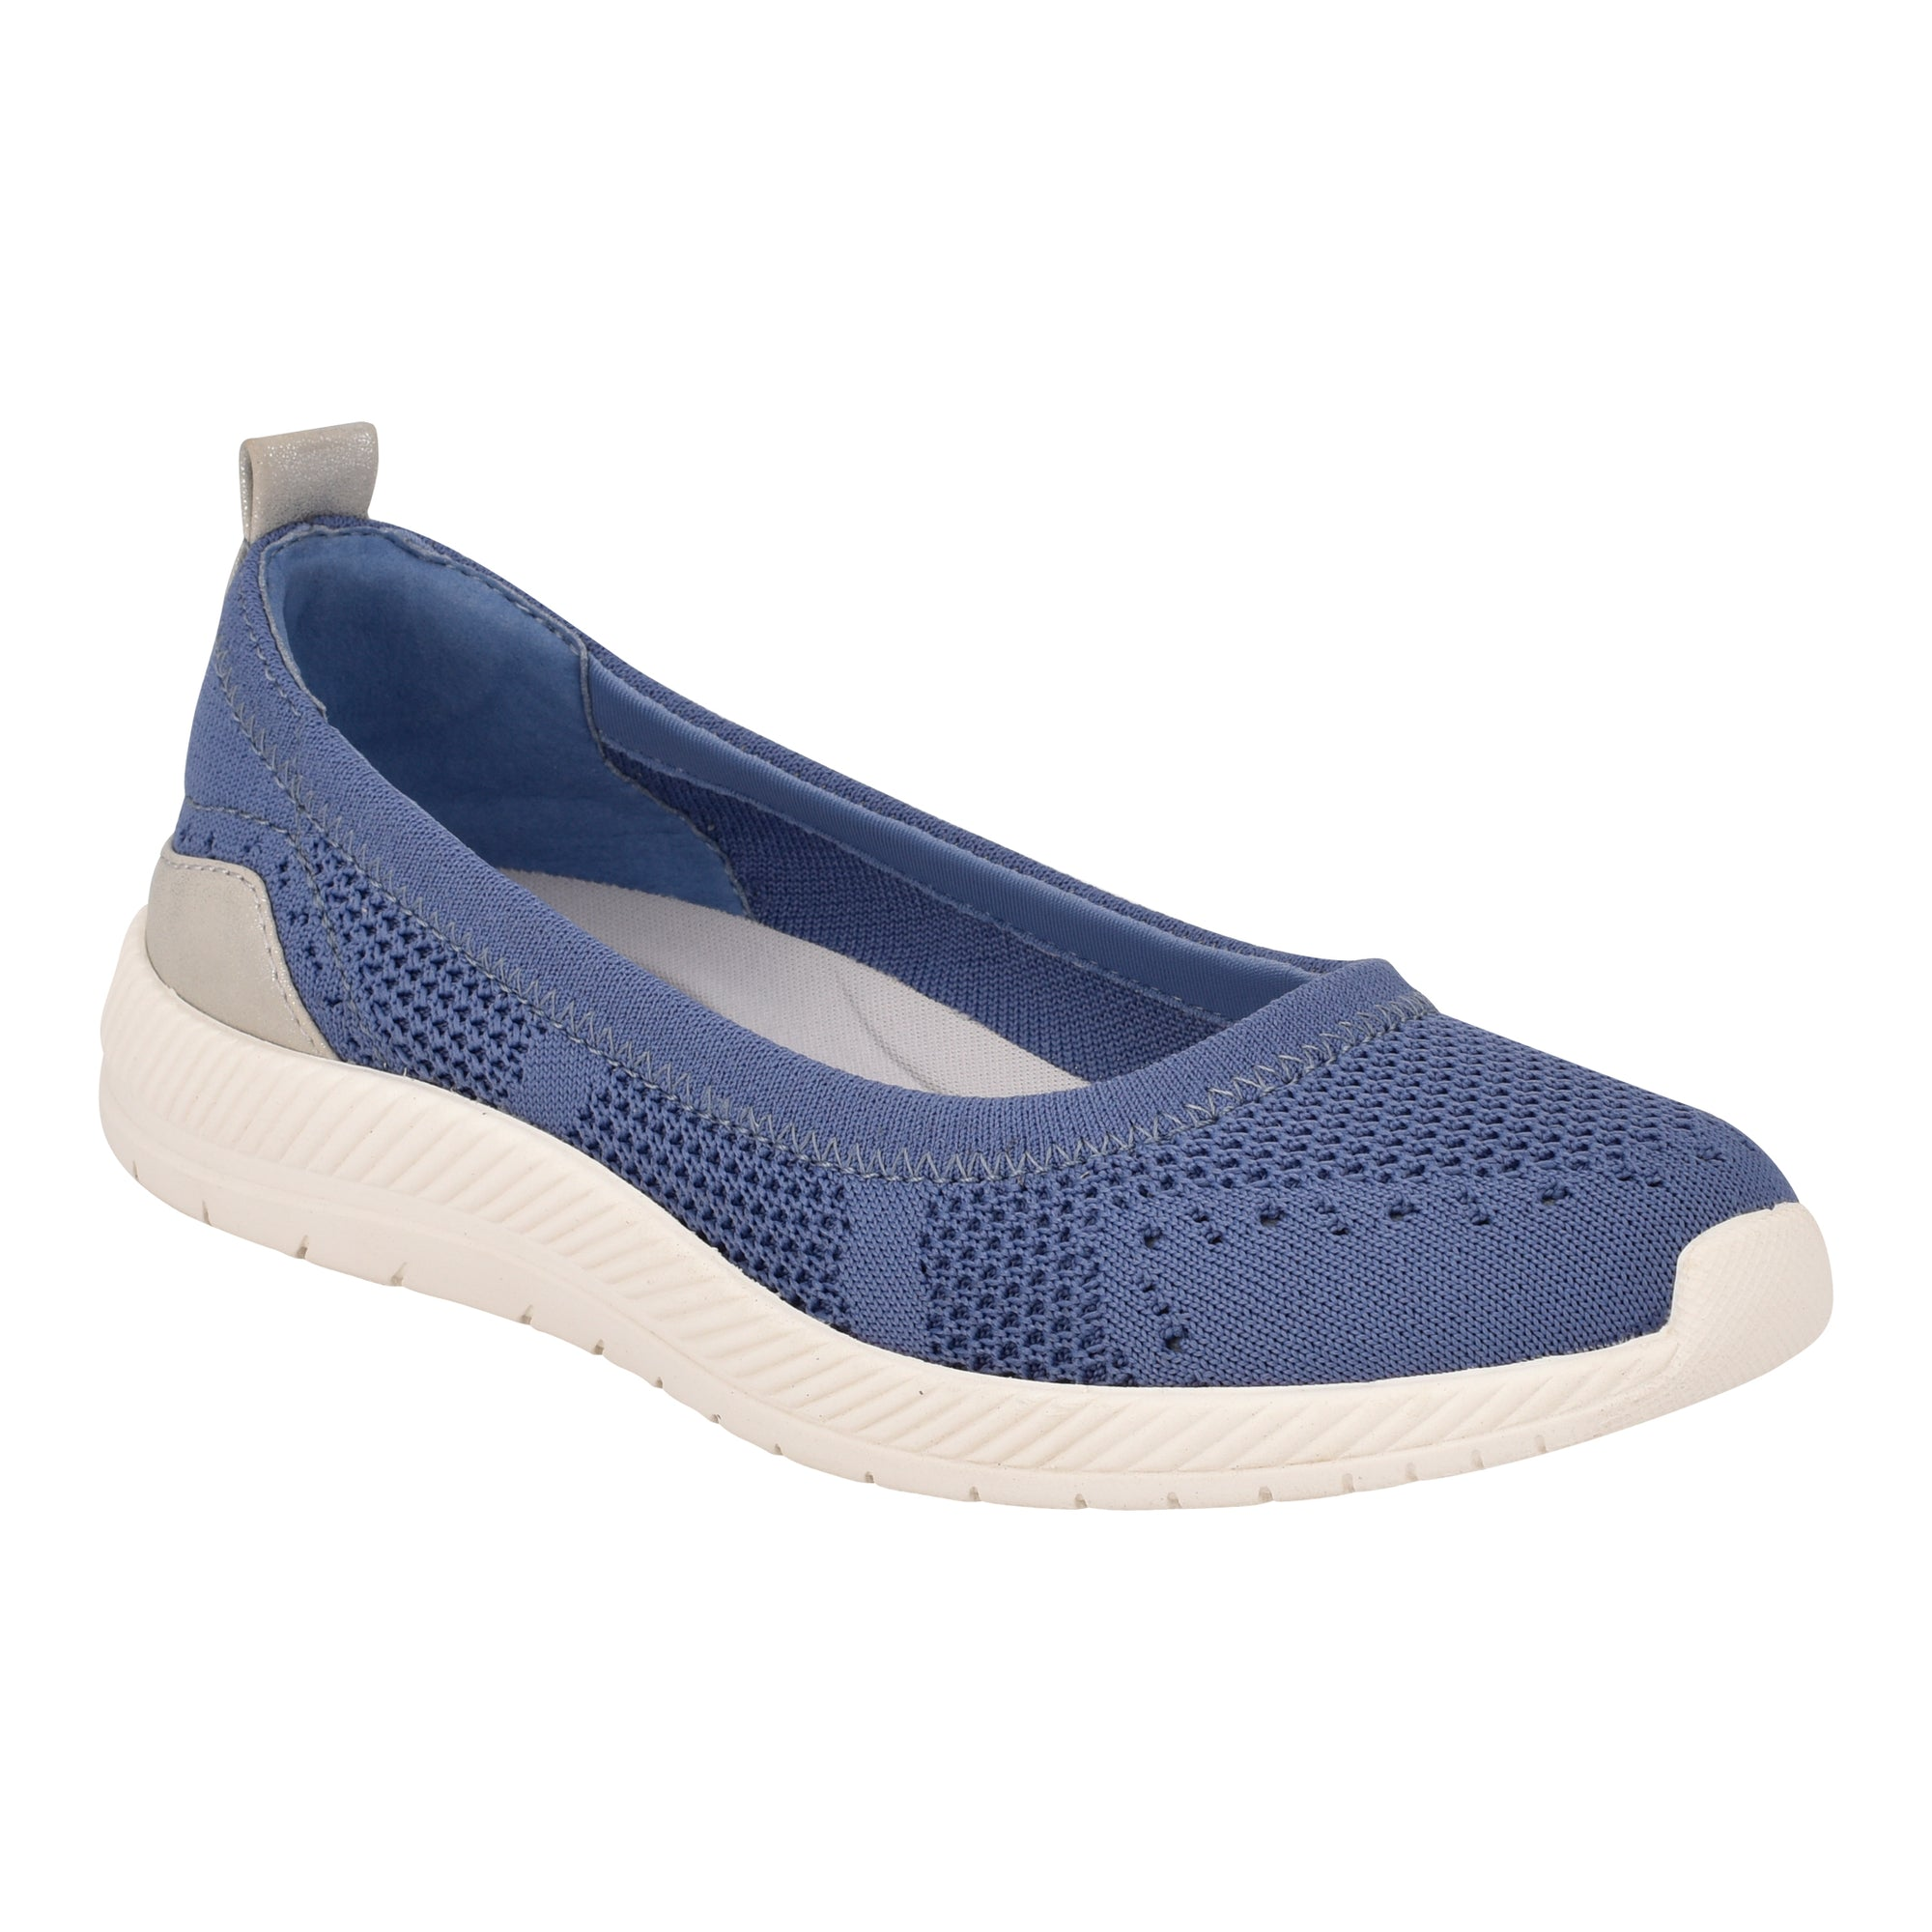 glitz-walking-shoes-in-medium-blue-knit